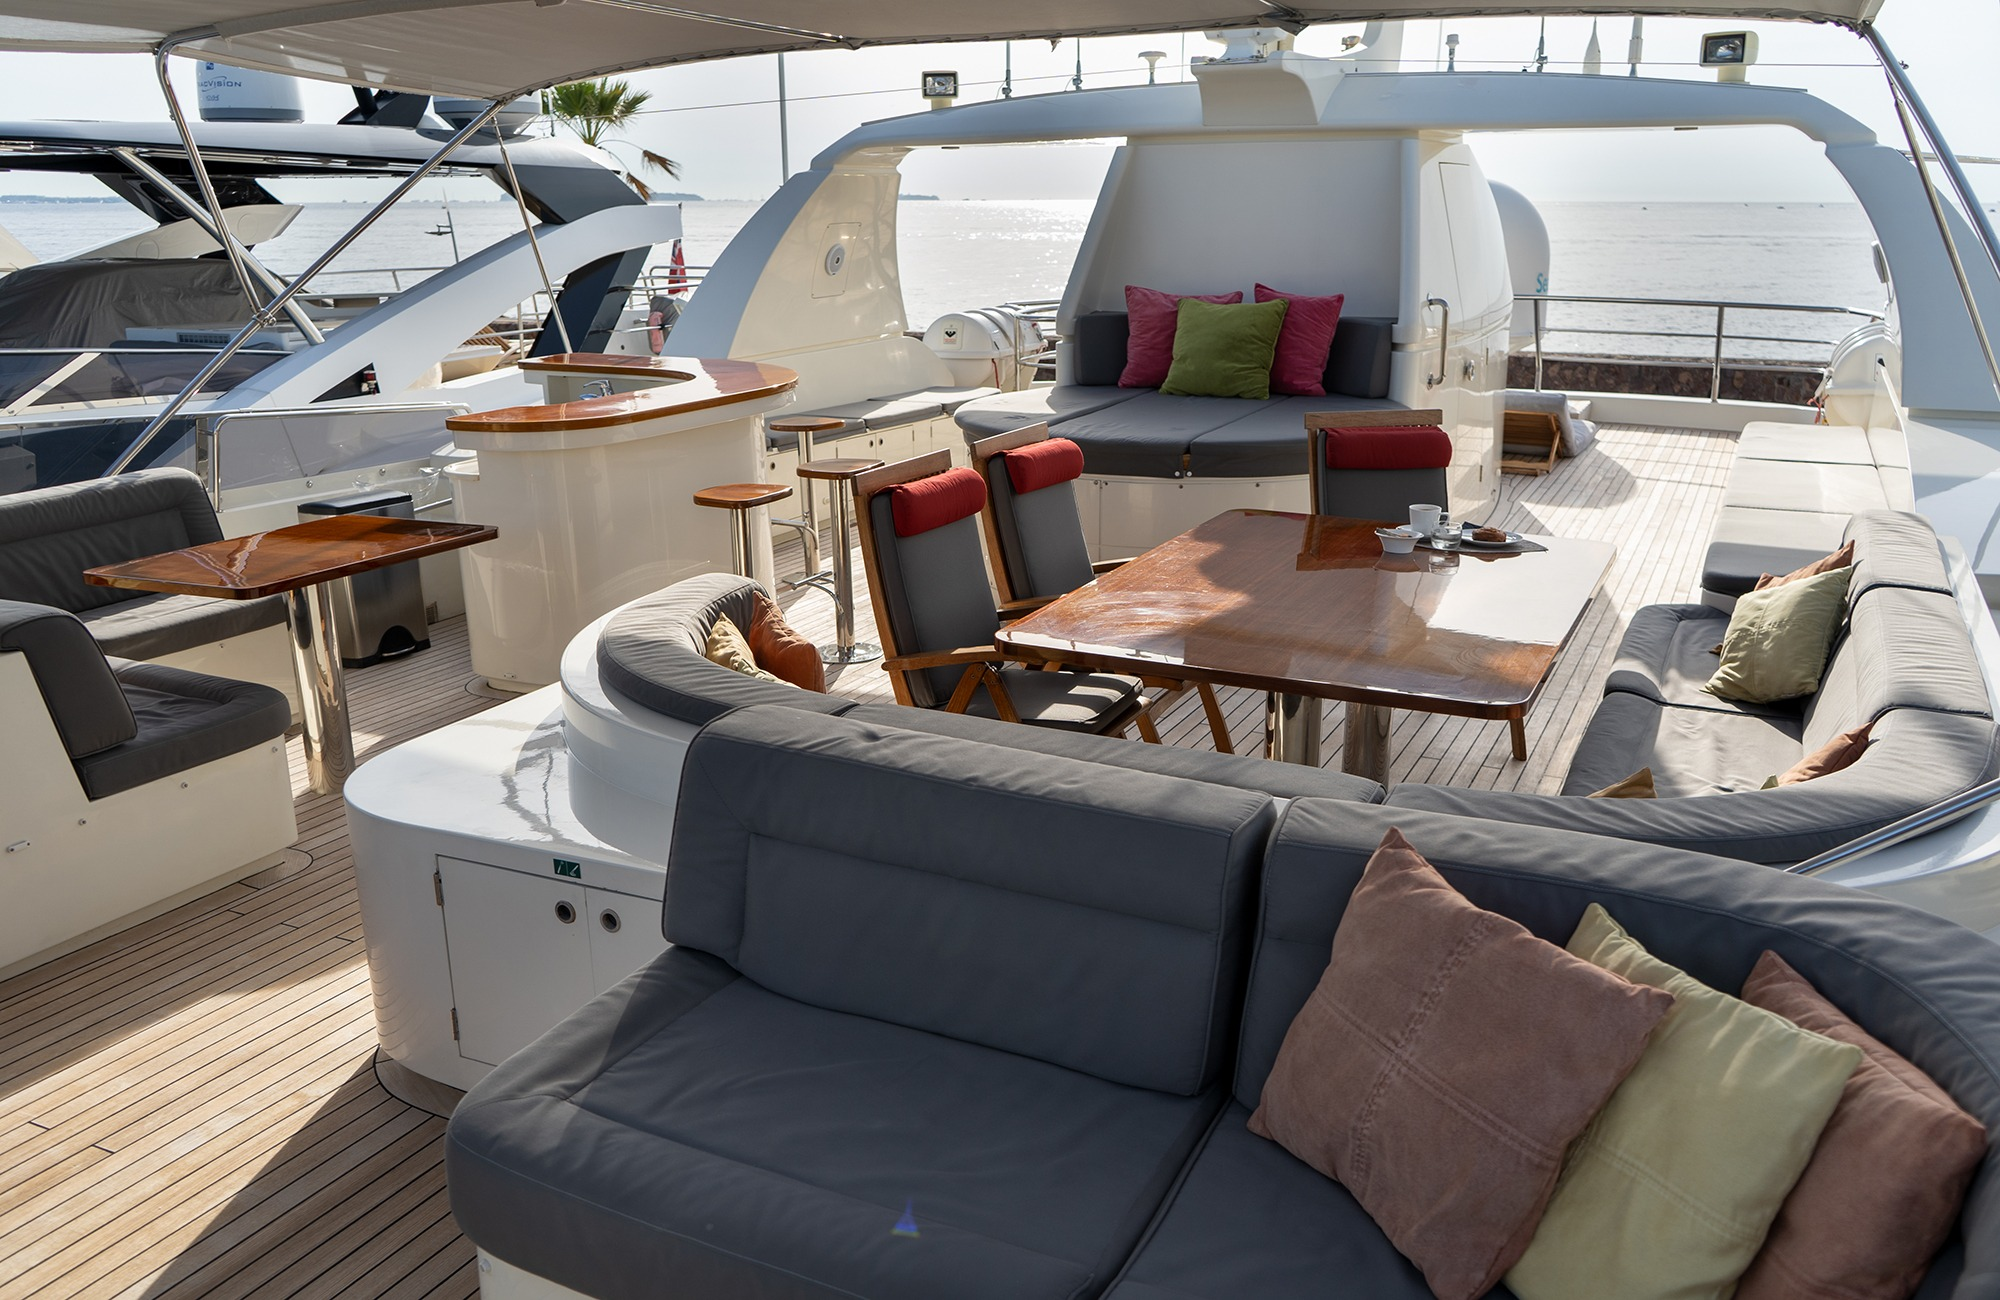 dine at the aft deck table